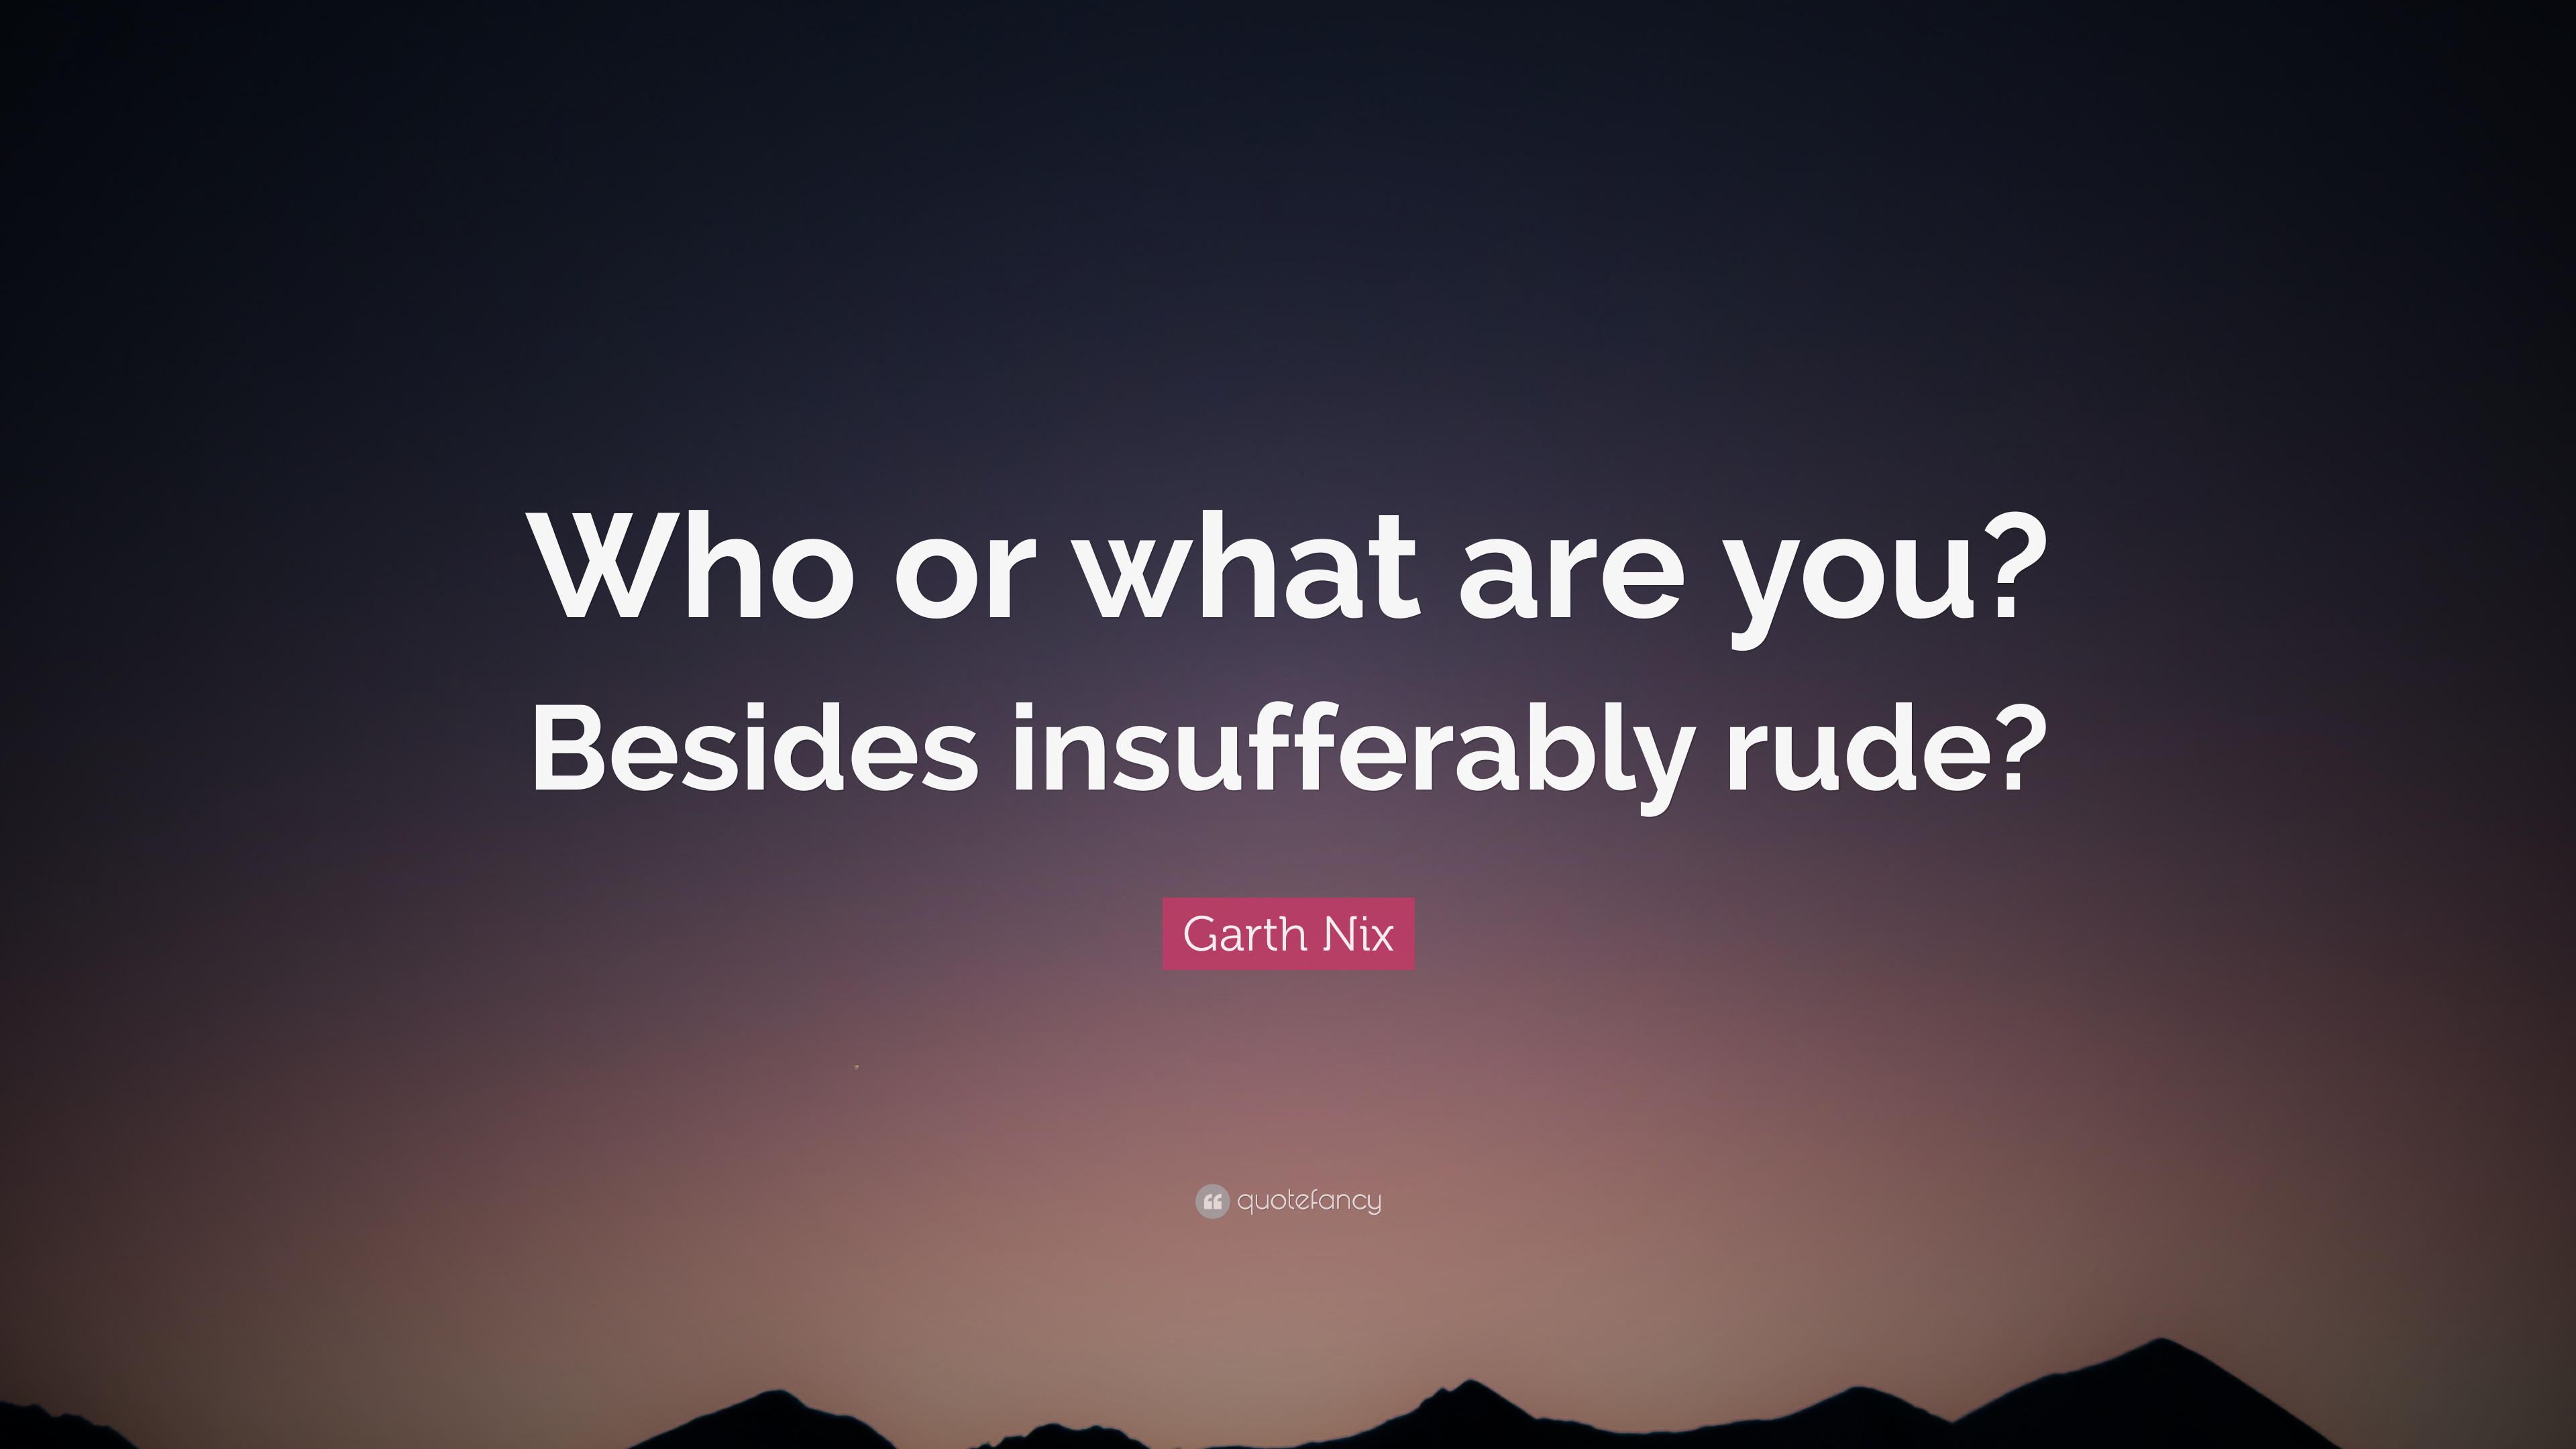 7 Wallpapers Garth Nix Quote Who Or What Are You Besides Insufferably Rude